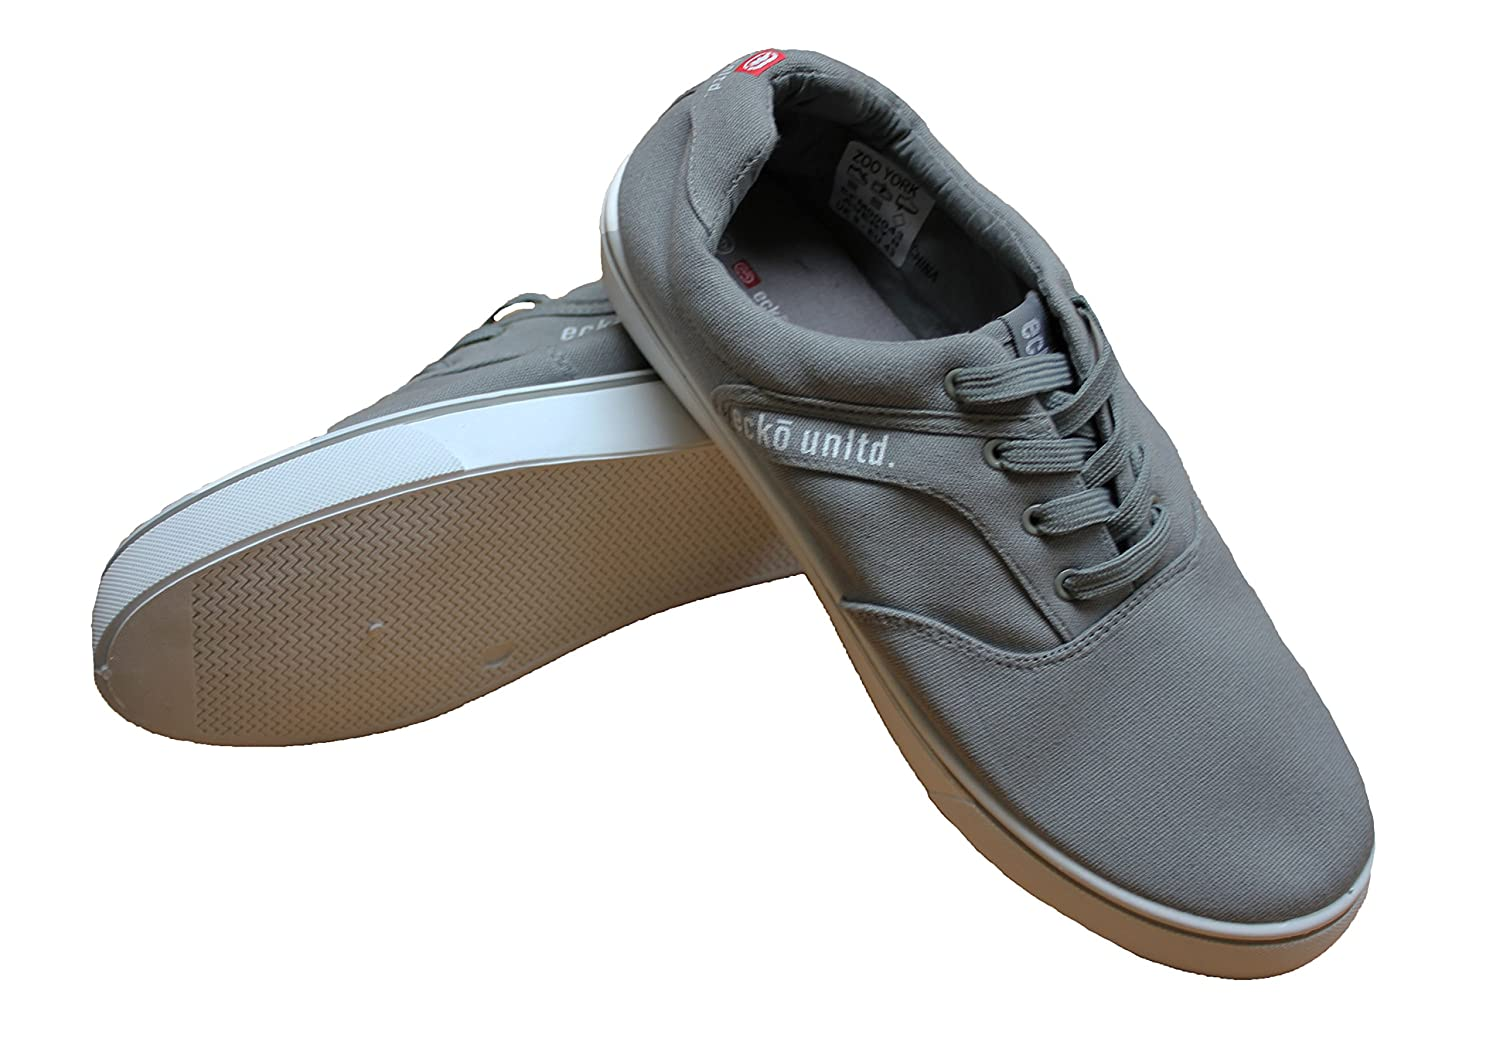 Ecko Unlimited Designer Mens Canvas Lace Up scarpe da ginnastica scarpe da ginnastica Pompe Daim AveryII